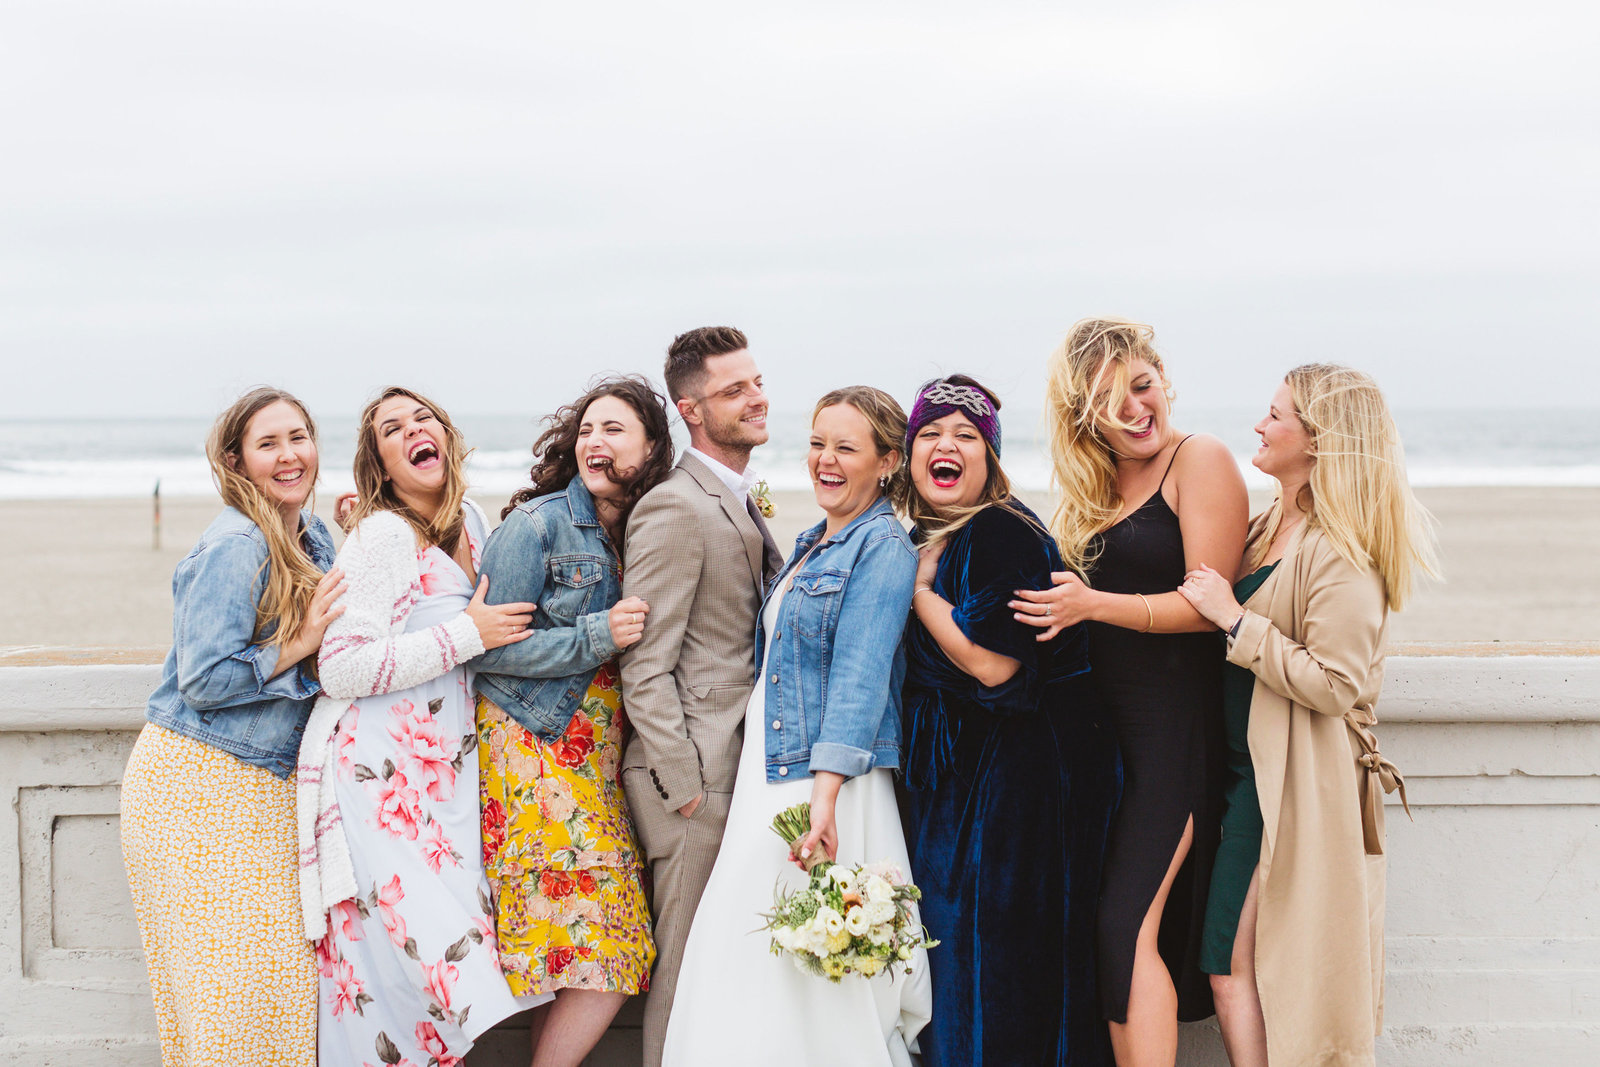 ocean beach wedding party photos